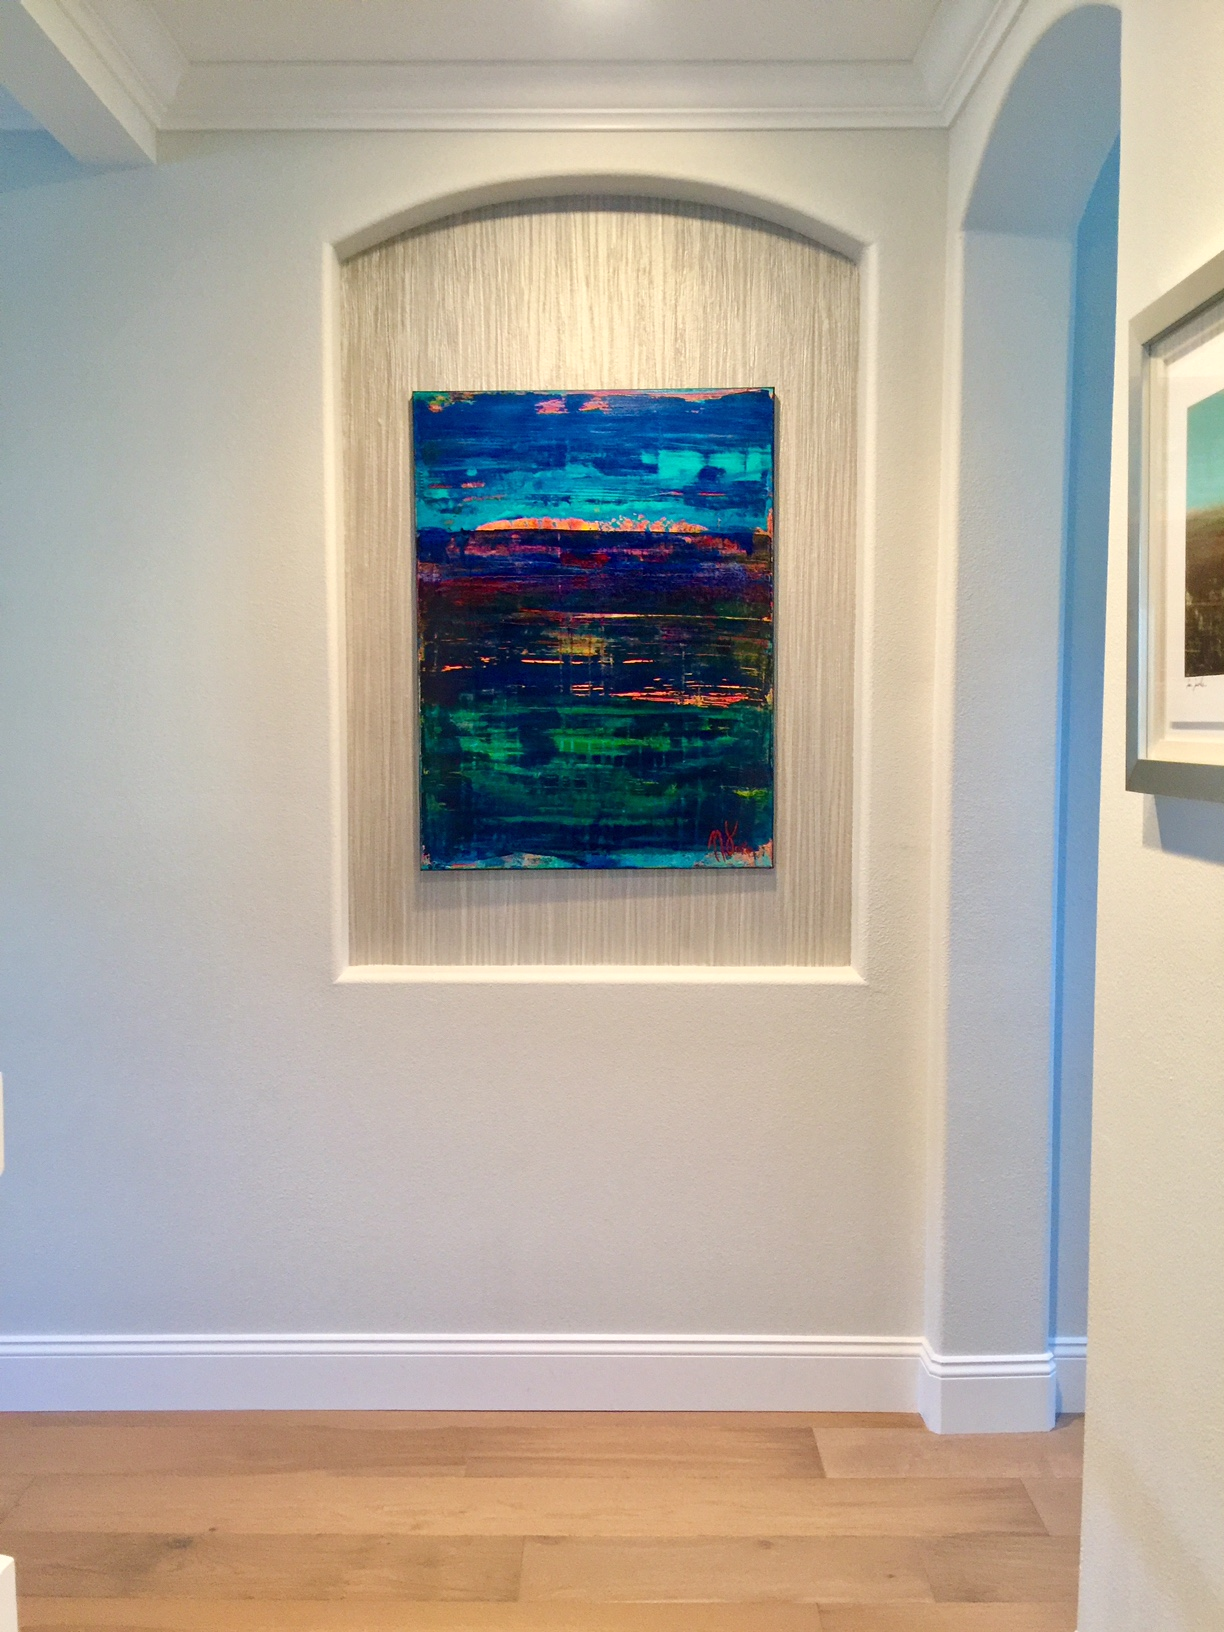 Installed in collector's home - Ocean Particles-Oceanic Colorfield Acrylic painting by Nestor Toro - Sold